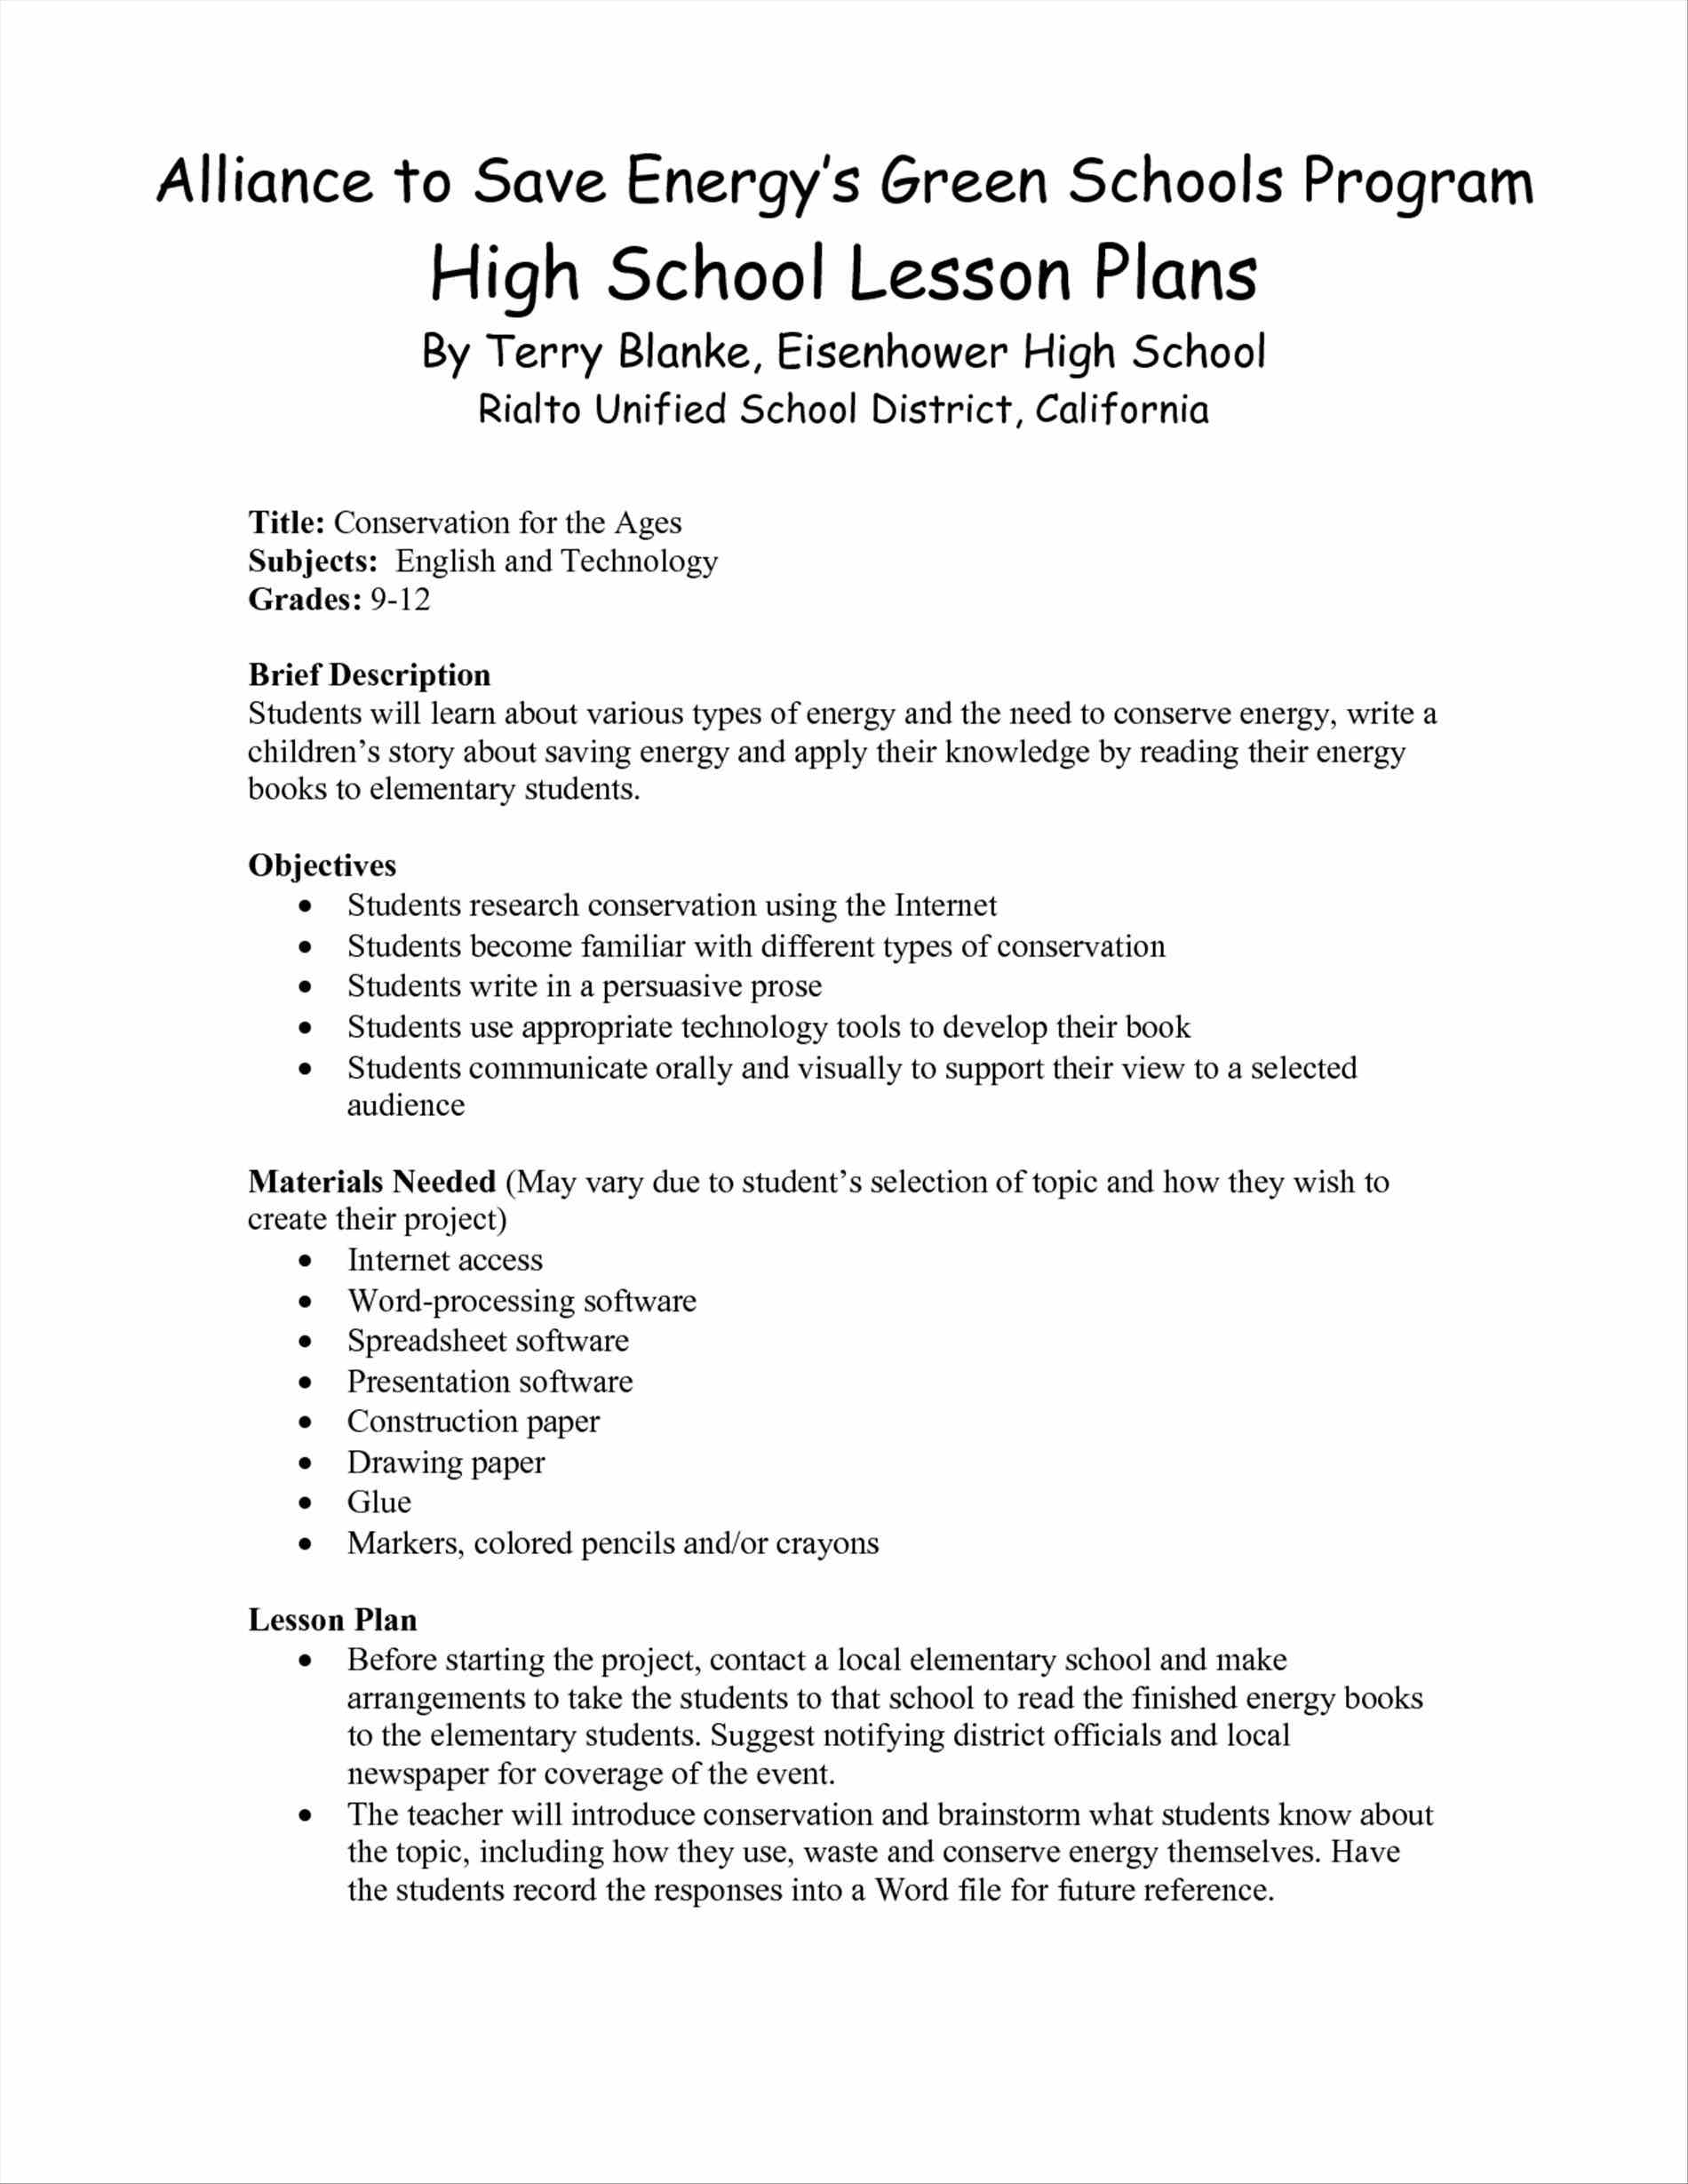 Spreadsheet Lesson Plans For High School